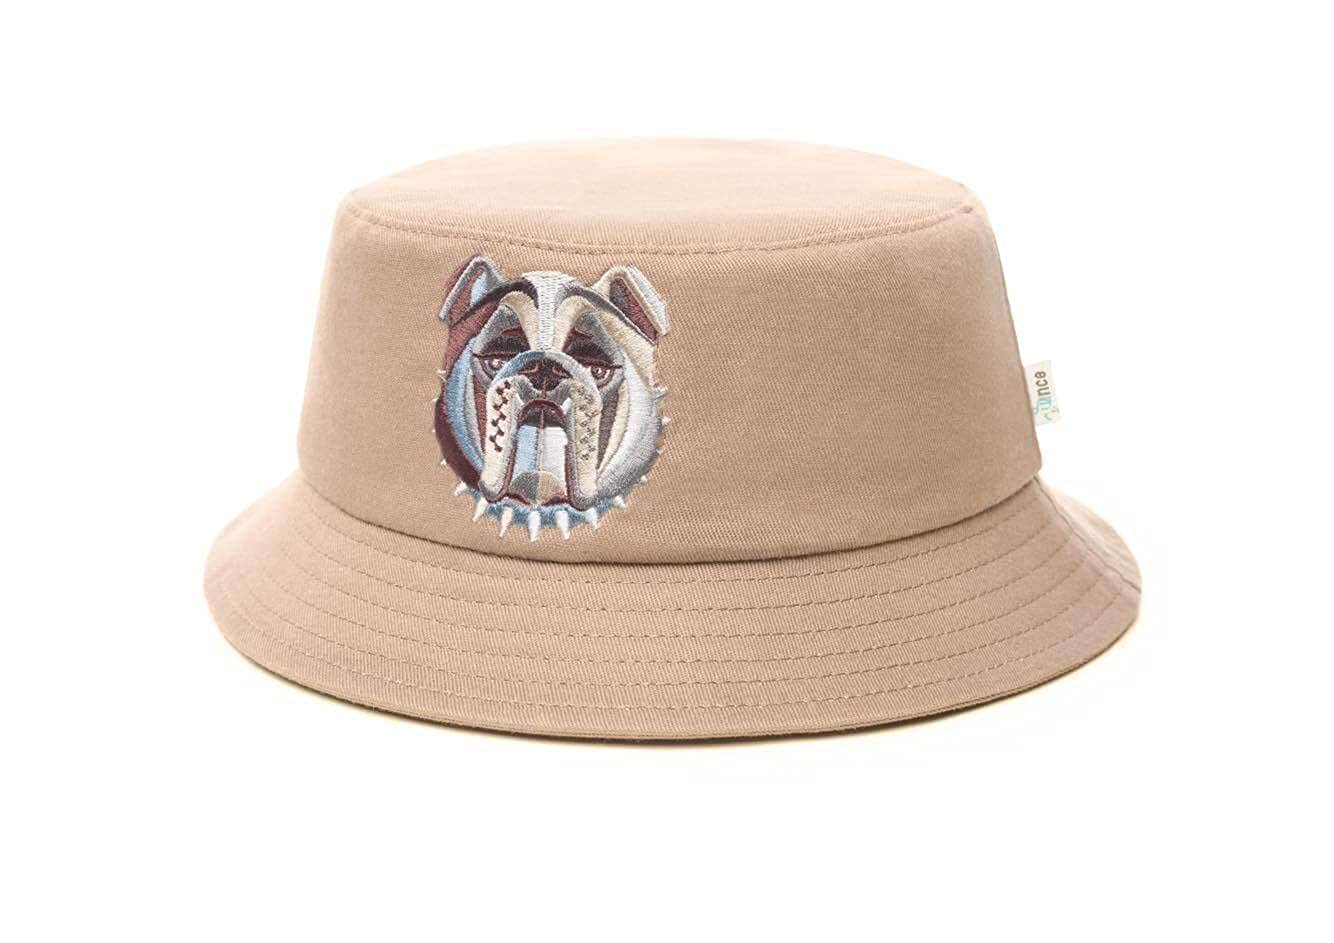 28 OUNCE Men s Bucket Hat One-Size-Fits-Most Premium Quality Material 100%  Cotton Multicolor Embroidered English Bulldog Logo by Ounce Stylish and ... 2610fd0f697a